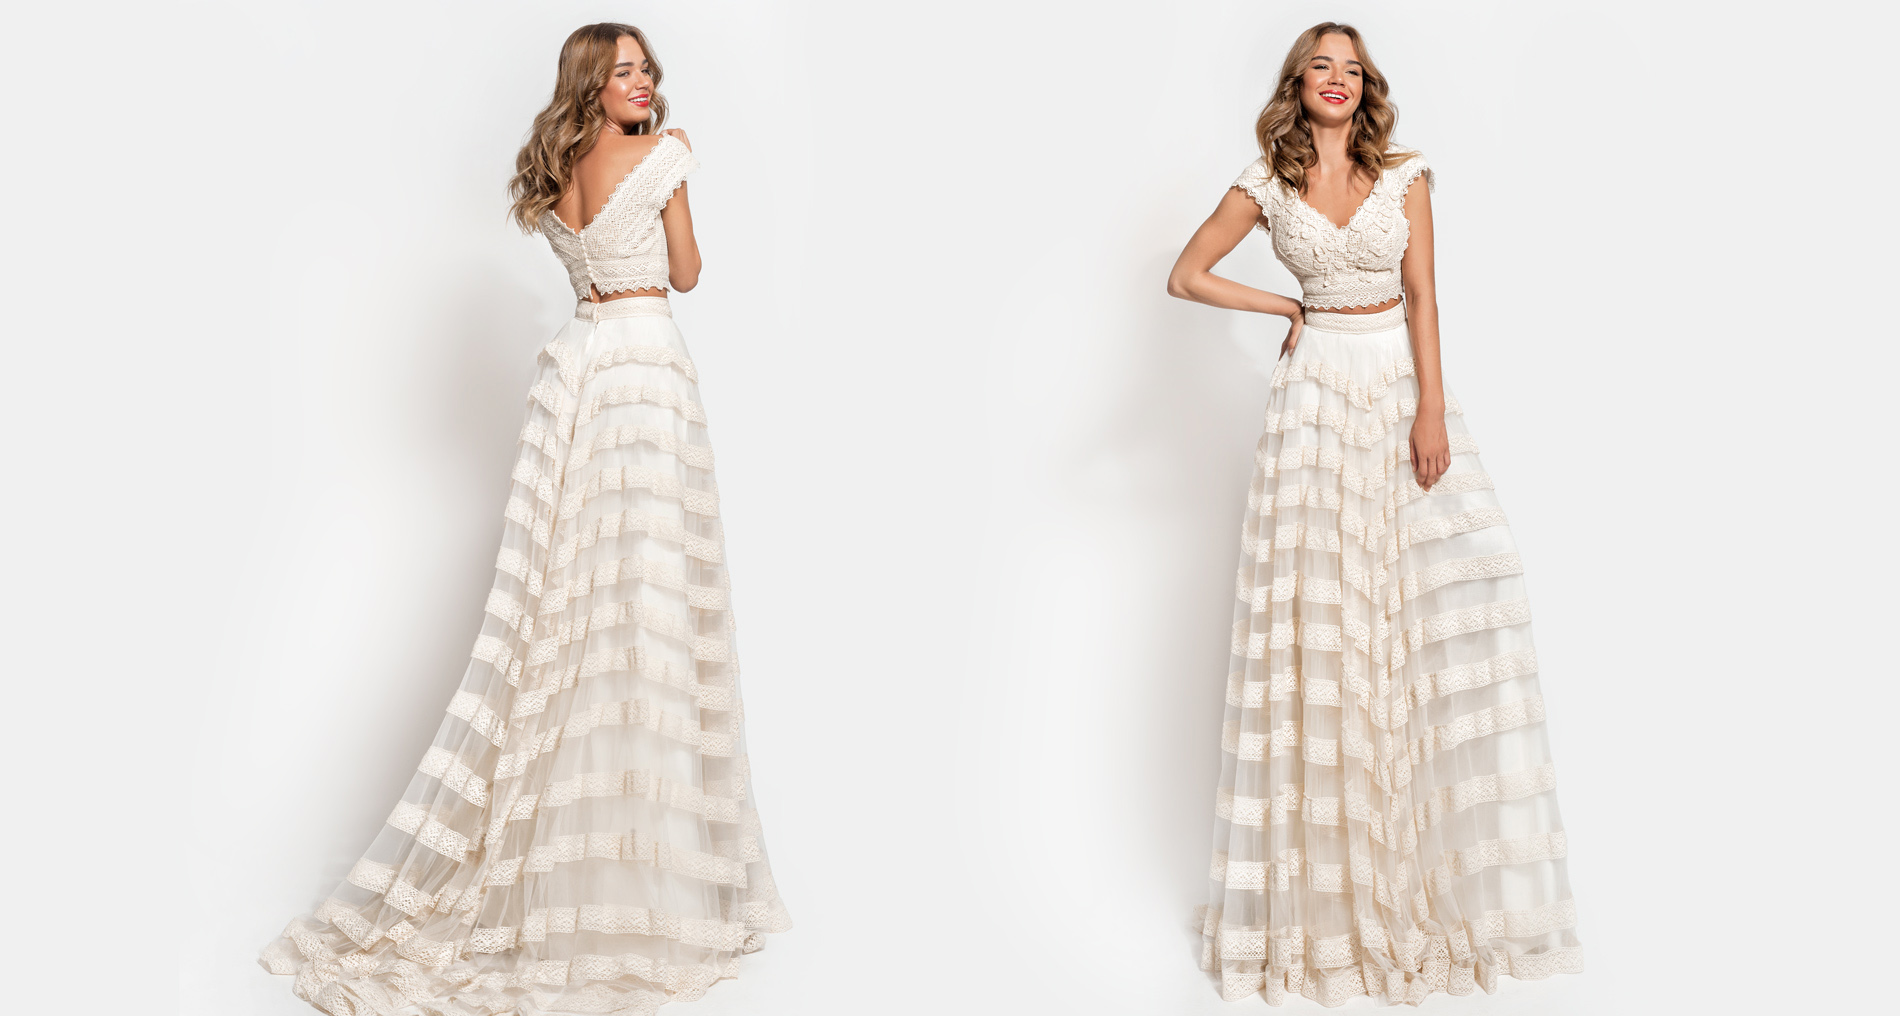 Theoni Top & Dareia Skirt wedding dress from  Hellenic Vintage Essence Collection